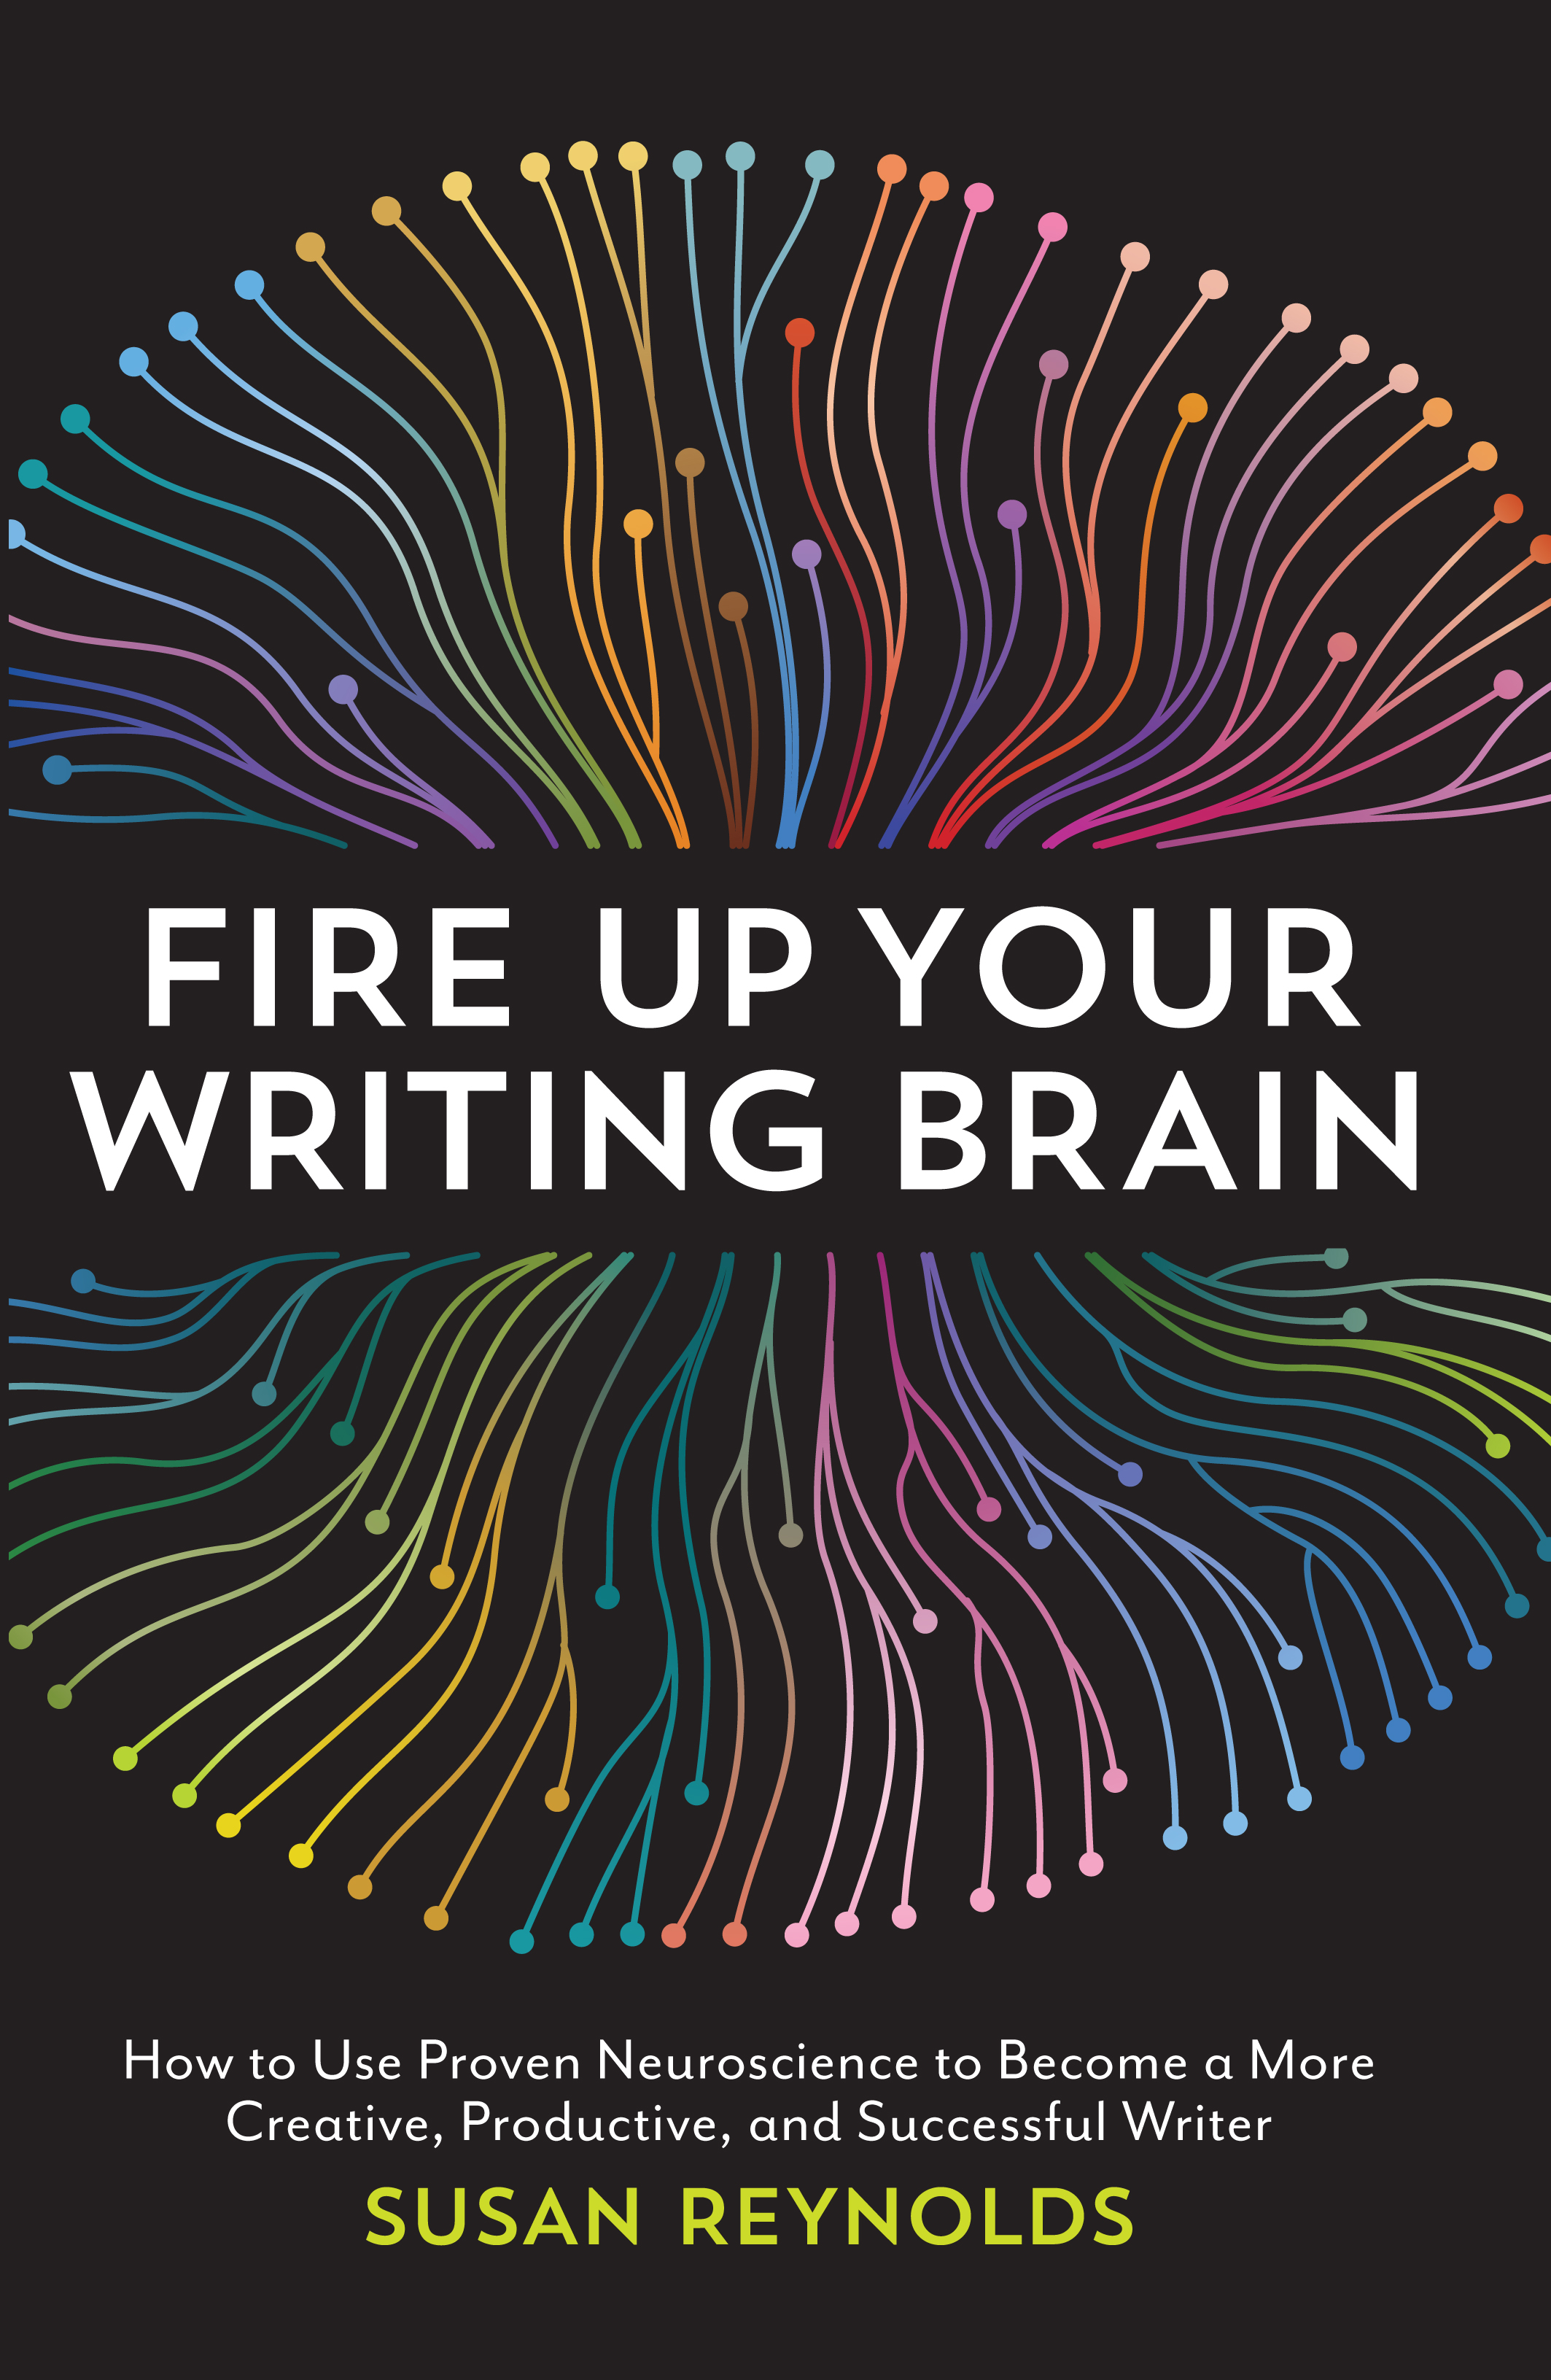 019 Essay Example Fire Up Your Writing Brain Models For Writers Short Essays Singular Composition 12th Edition 13th Pdf Full